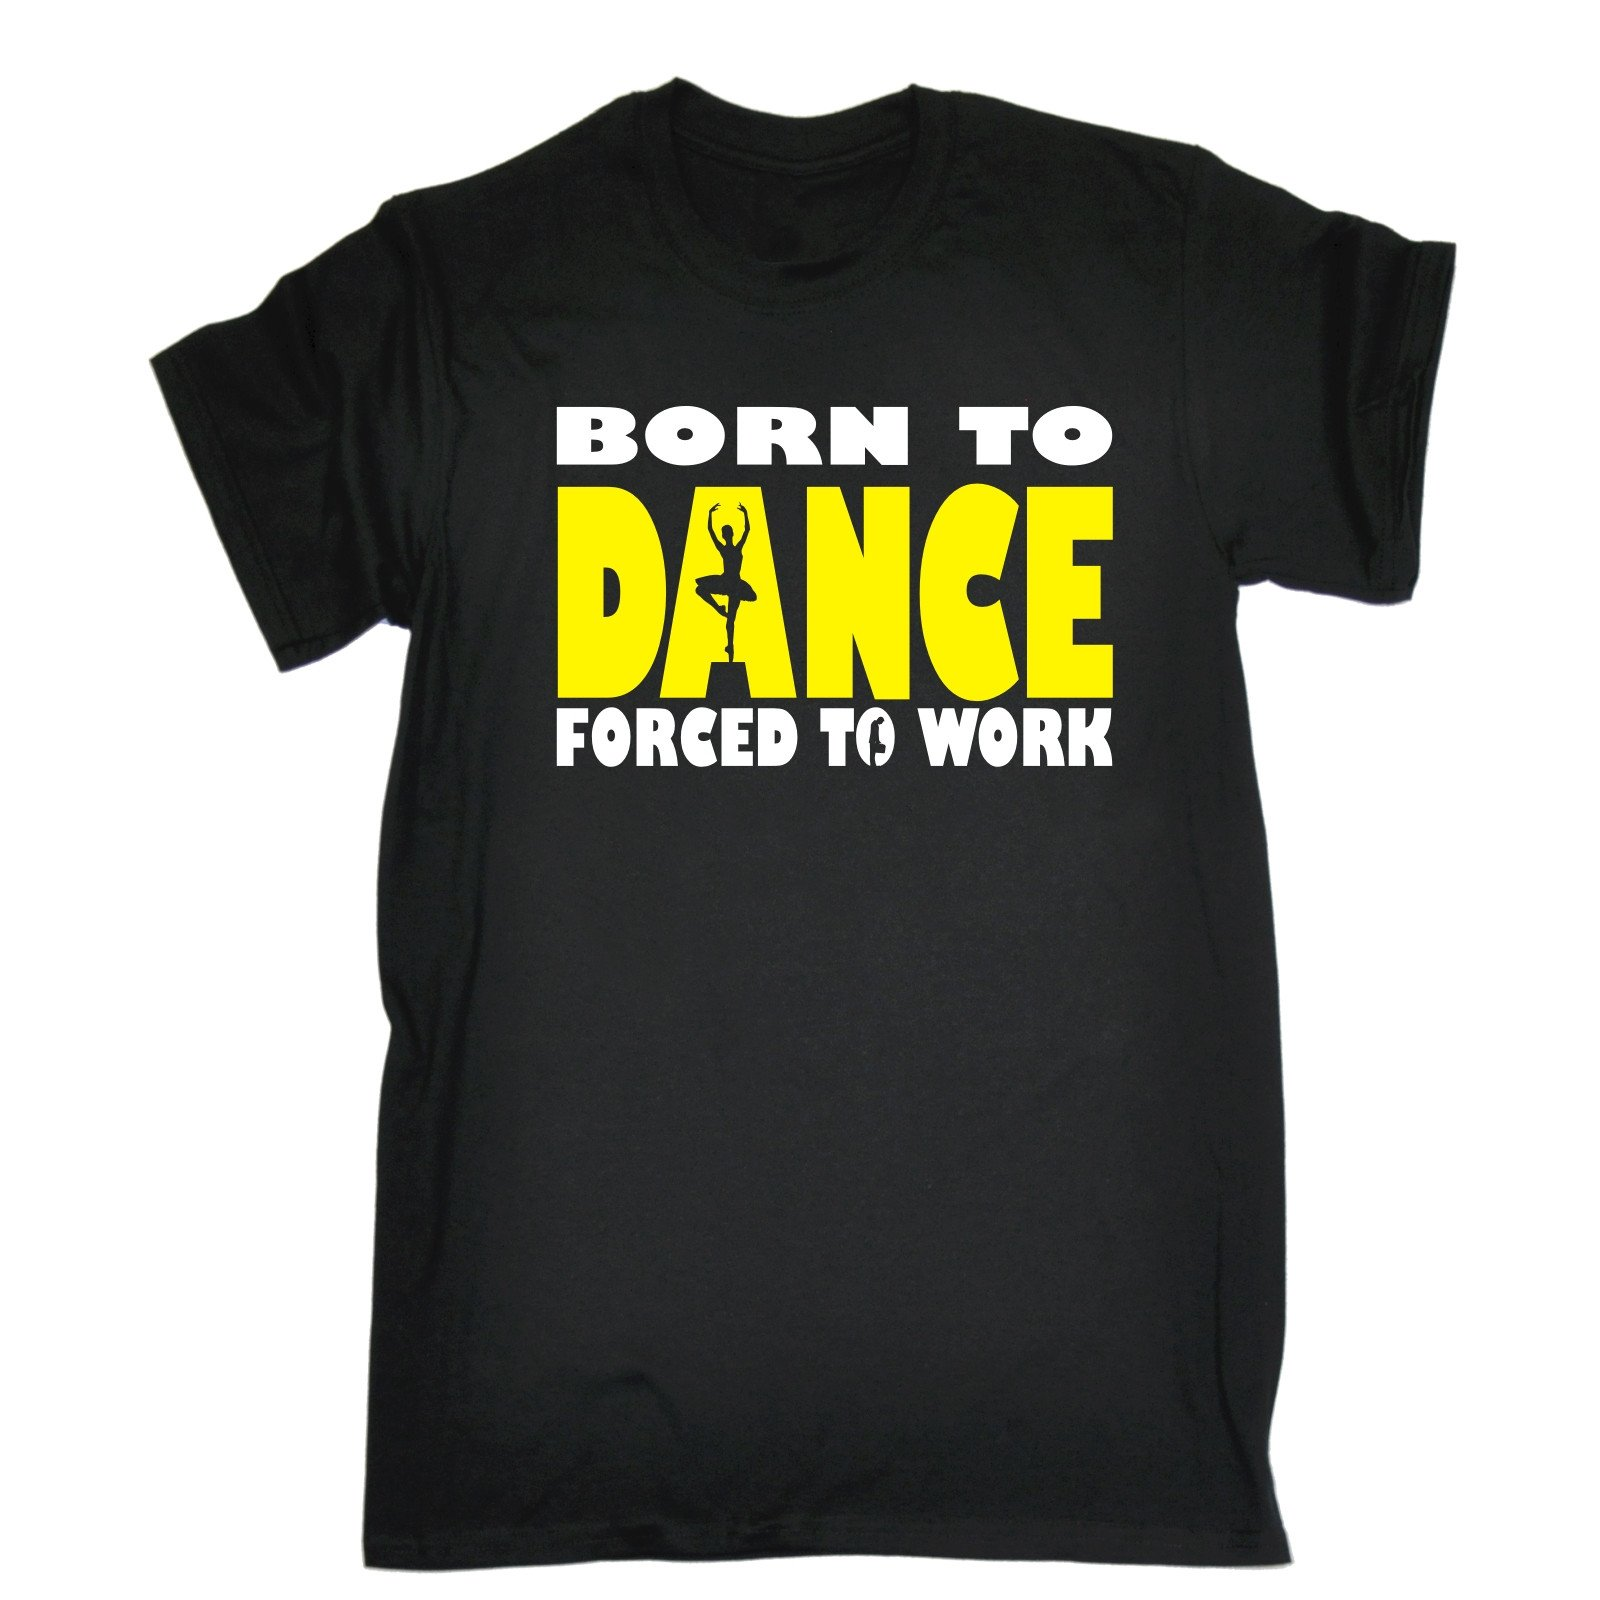 Born To Dance Forced To Work T-SHIRT Dancer Dancing Shoes Arts Gift Christmas Novelty O-Neck Tops High Quality for Man T SHIRT